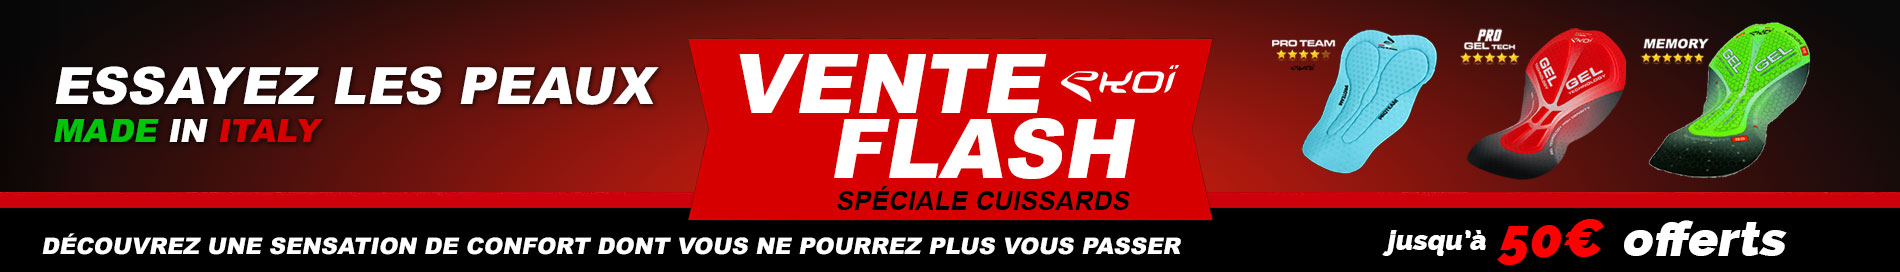 Vente Flash speciale CUISSARDS